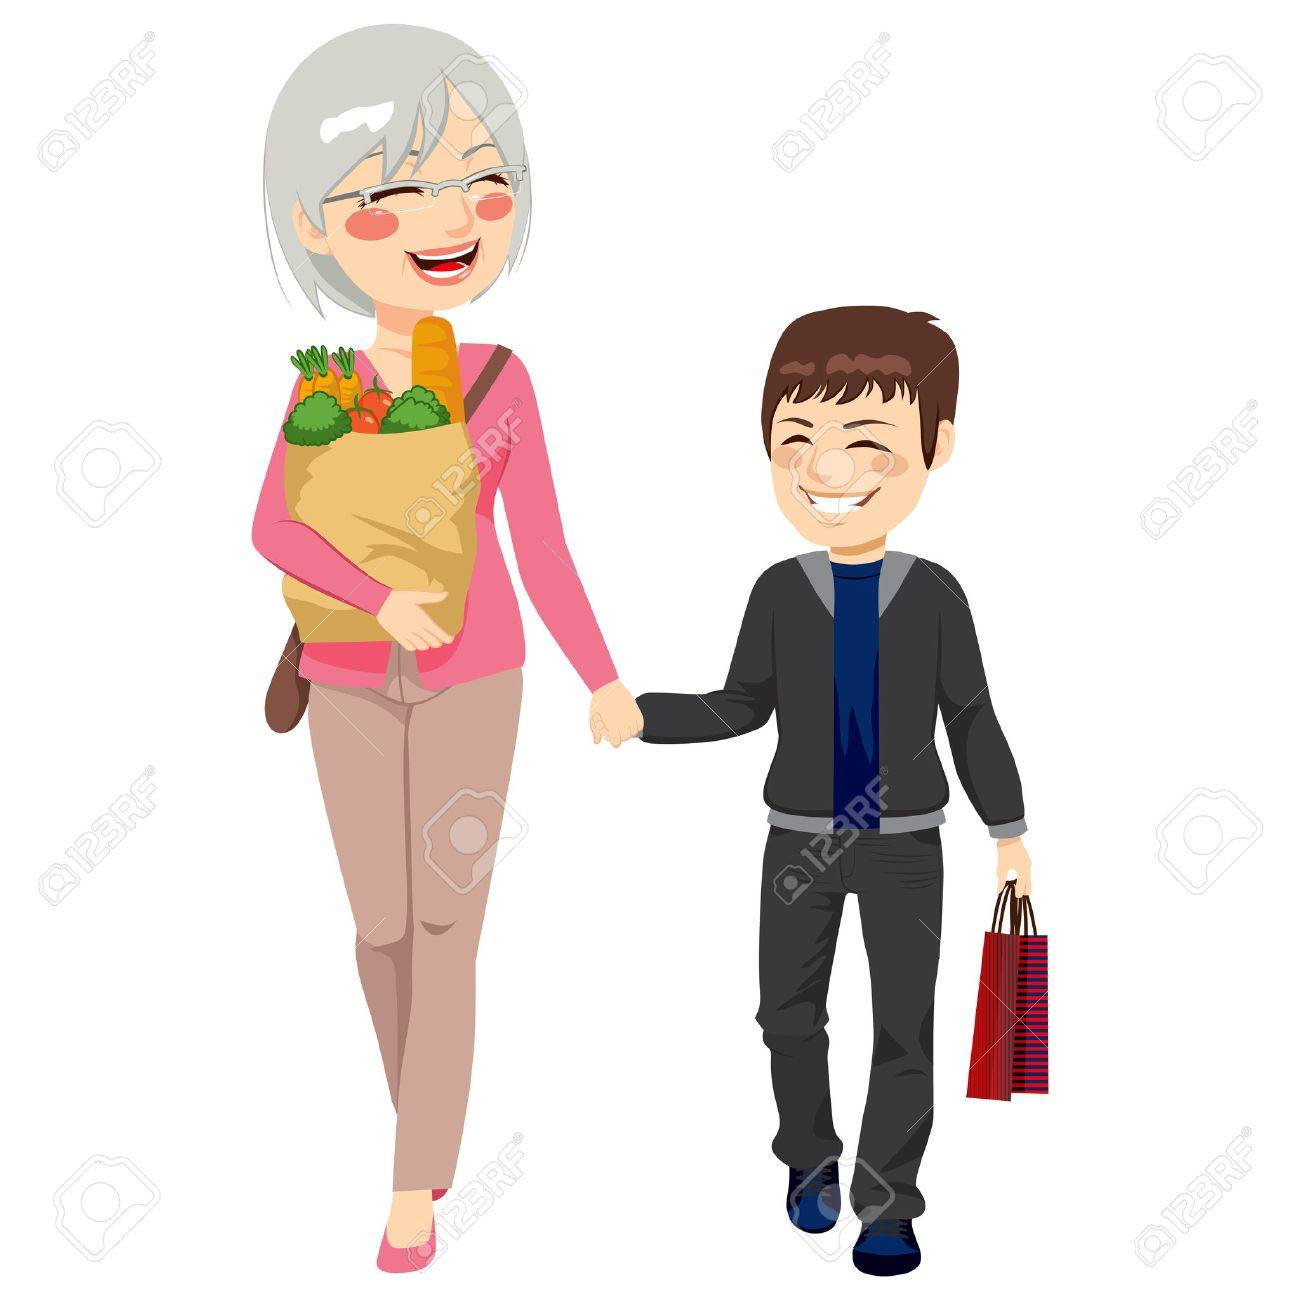 lovely grandmother grocery paper bag and grandson shopping lovely grandmother grocery paper bag and grandson shopping together helping grandparent holding bags stock vector